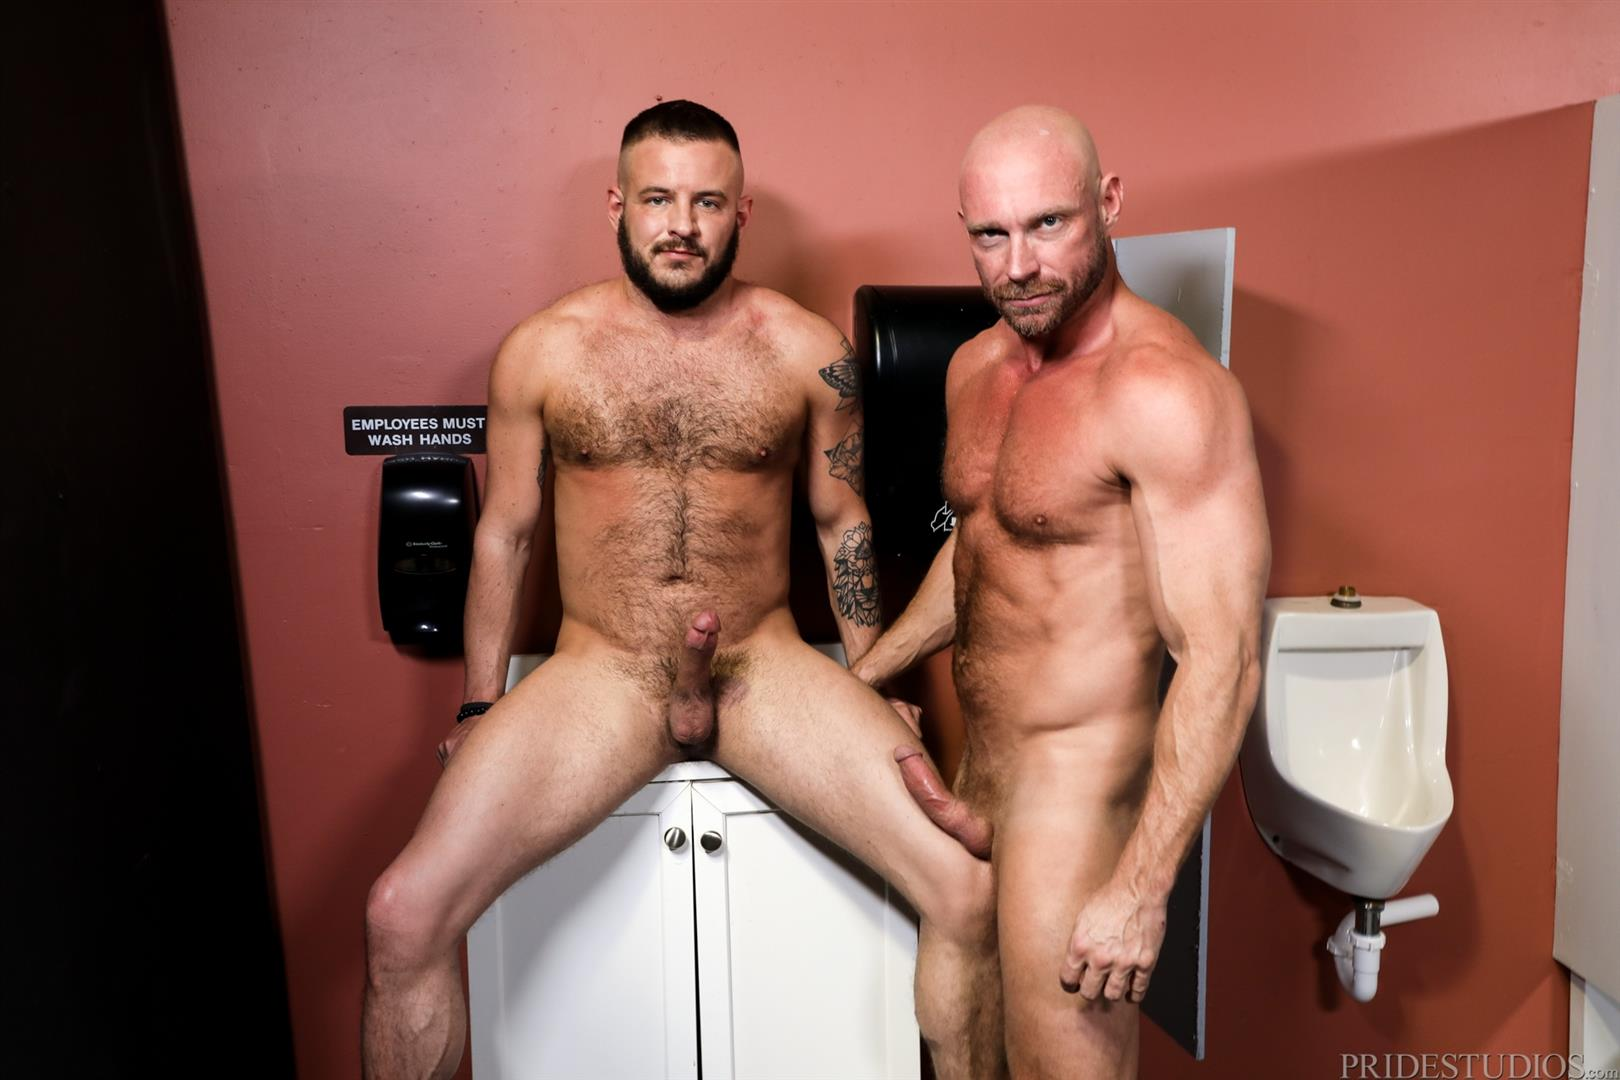 Men-Over-30-Killian-Knox-and-Sean-Harding-Bareback-Fucking-Public-Glory-Hole-08 Bareback Flip Fucking At A Public Glory Hole Restroom